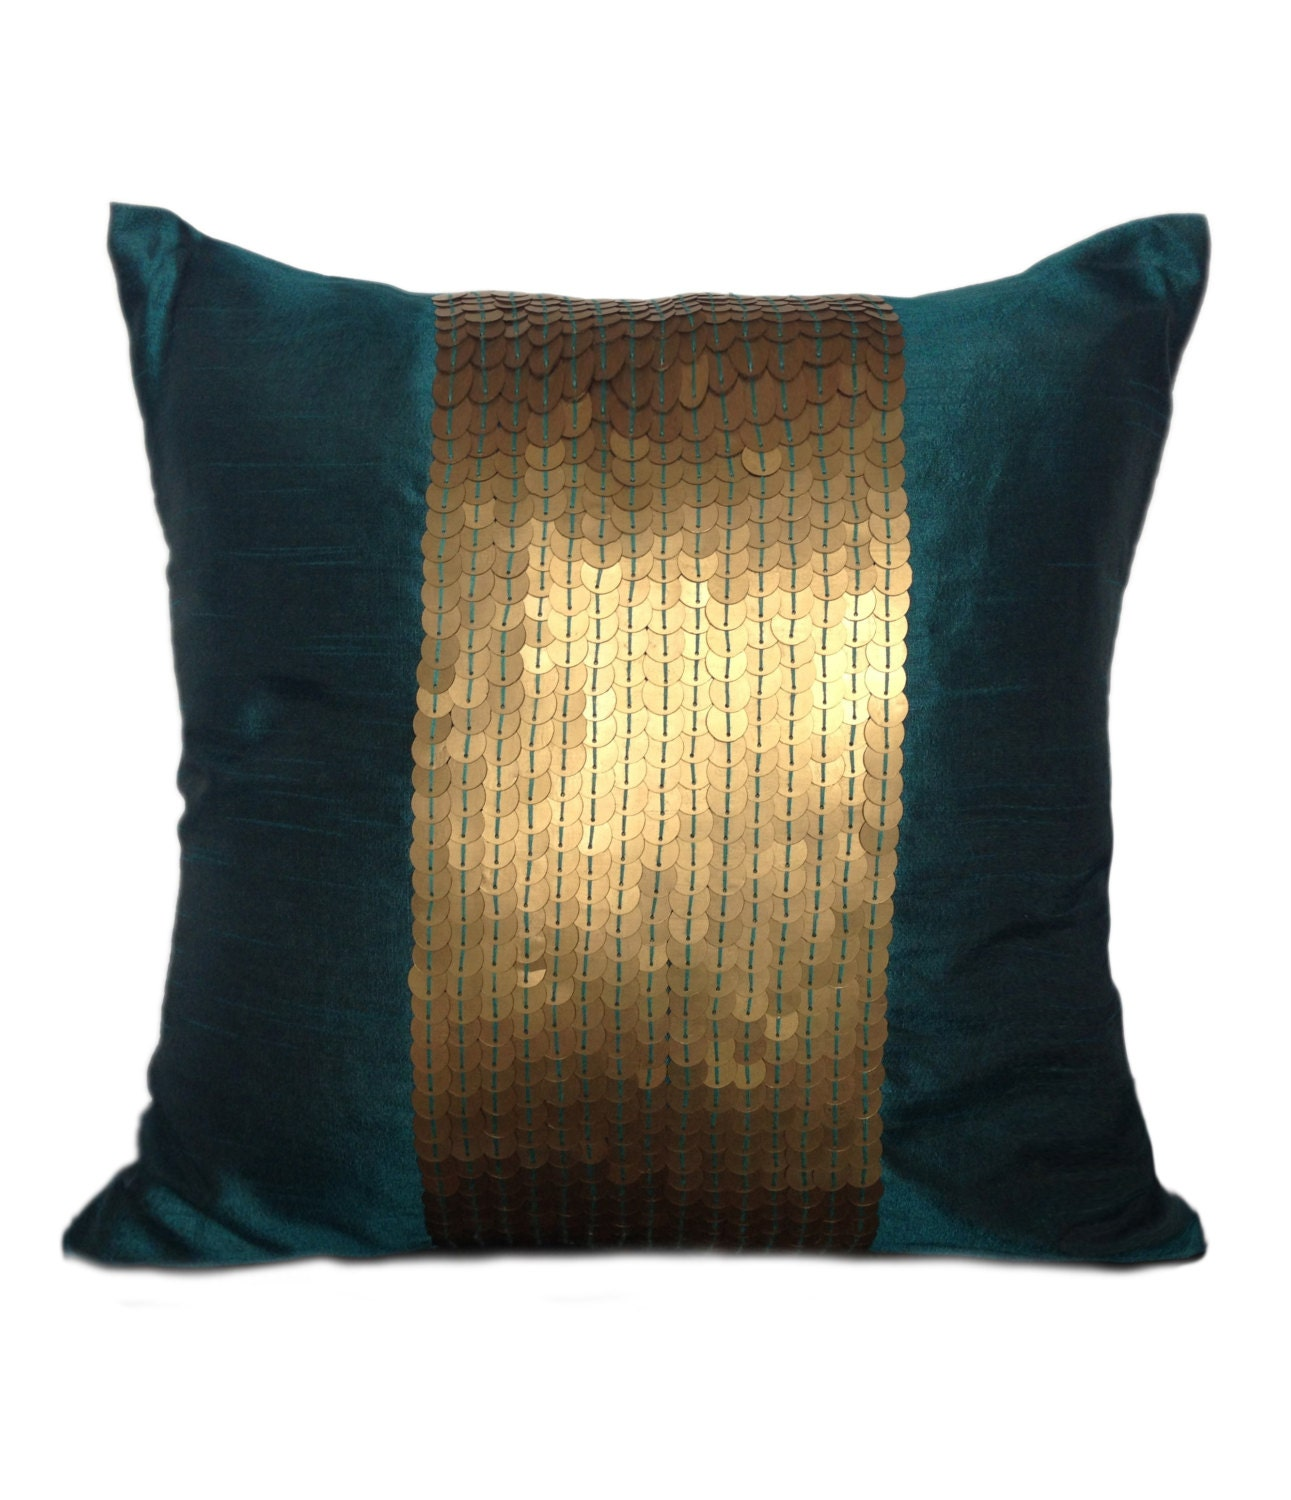 Decorative Pillows With Teal : Teal Decorative Pillow Cover Teal Gold Sequin Pillow